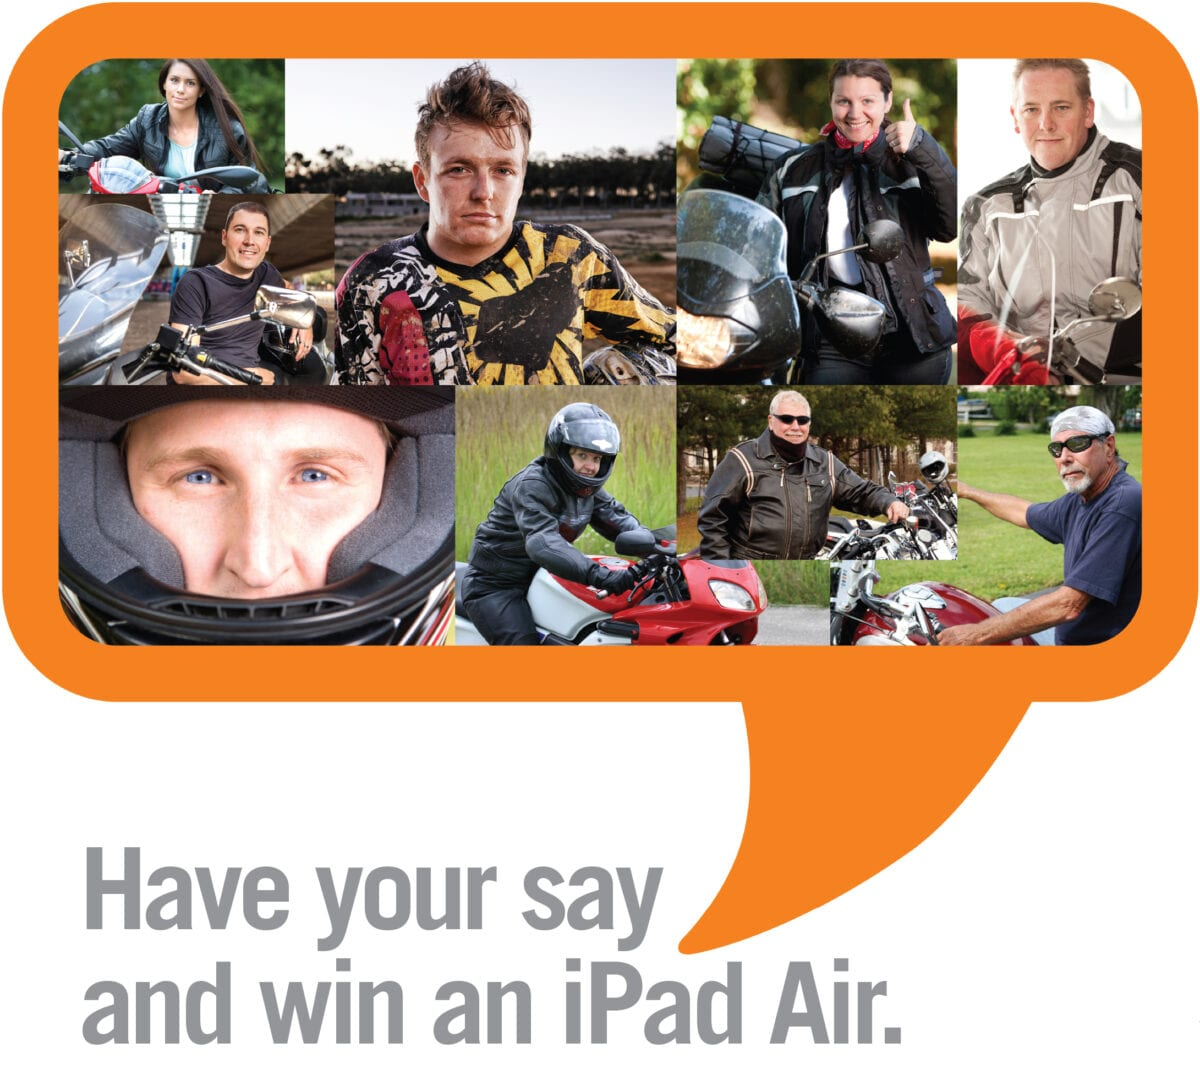 Have your say and win an ipad air